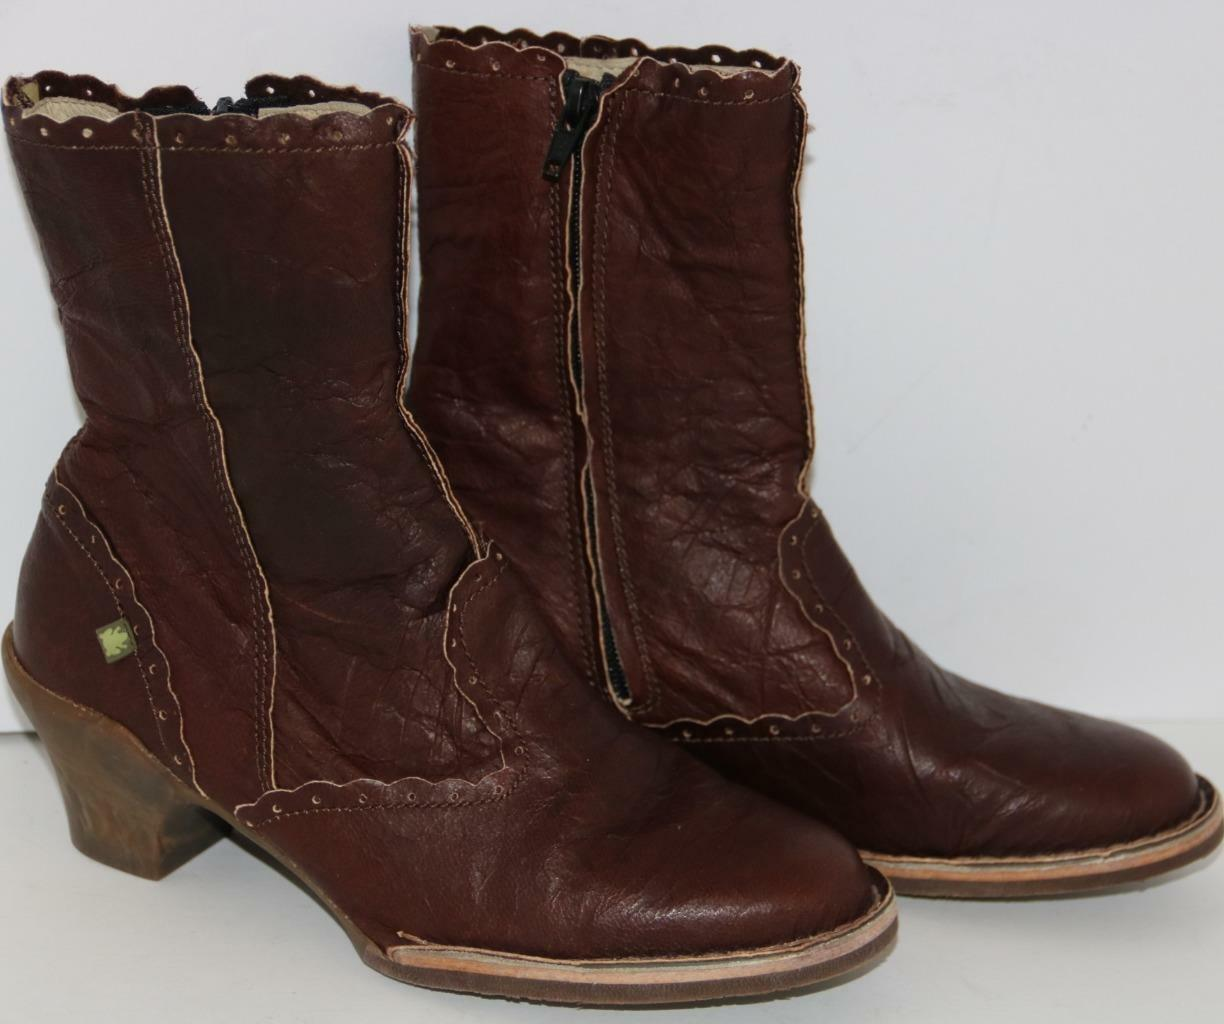 El Naturalista Women's shoes Ankle Boots Brown Leather Size 7 37 FREE SHIPPING